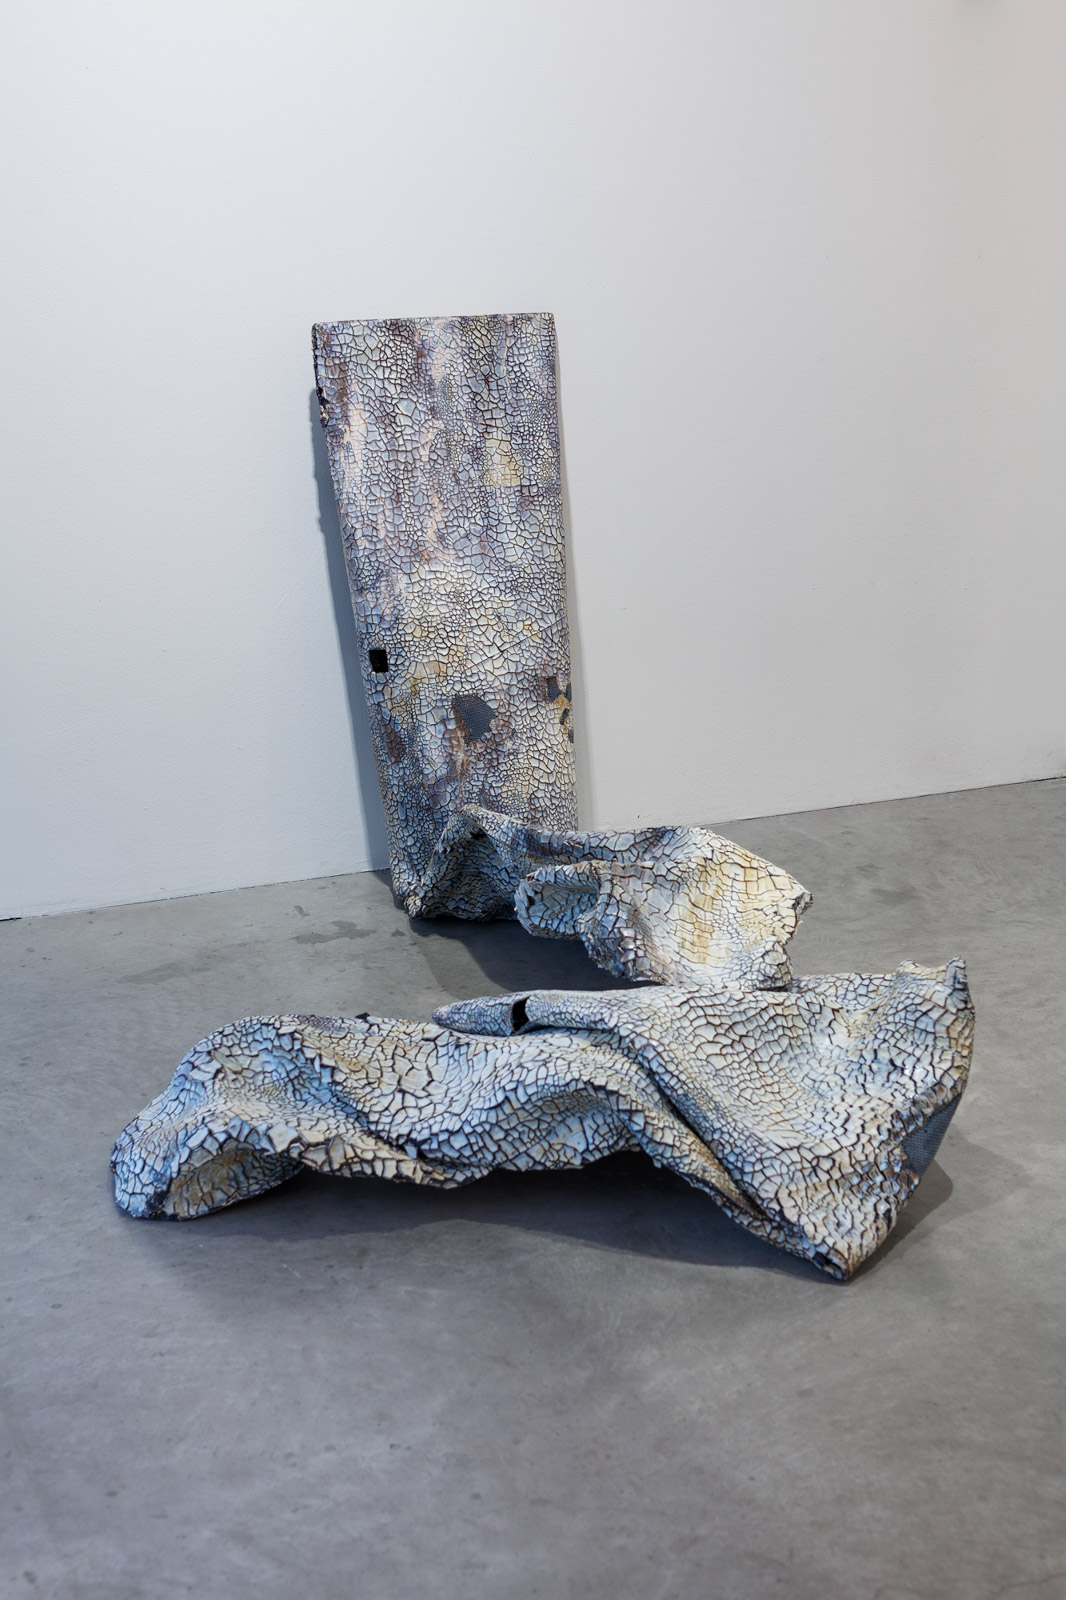 Tubus Titan 4-5 (from a series of 11 sculptures in steel-reinforced ceramics) with titanium dioxide and sinter engobe. 102 x 128 x 48 cm / 31 x 78 x 114 cm, in two parts placed on the floor.